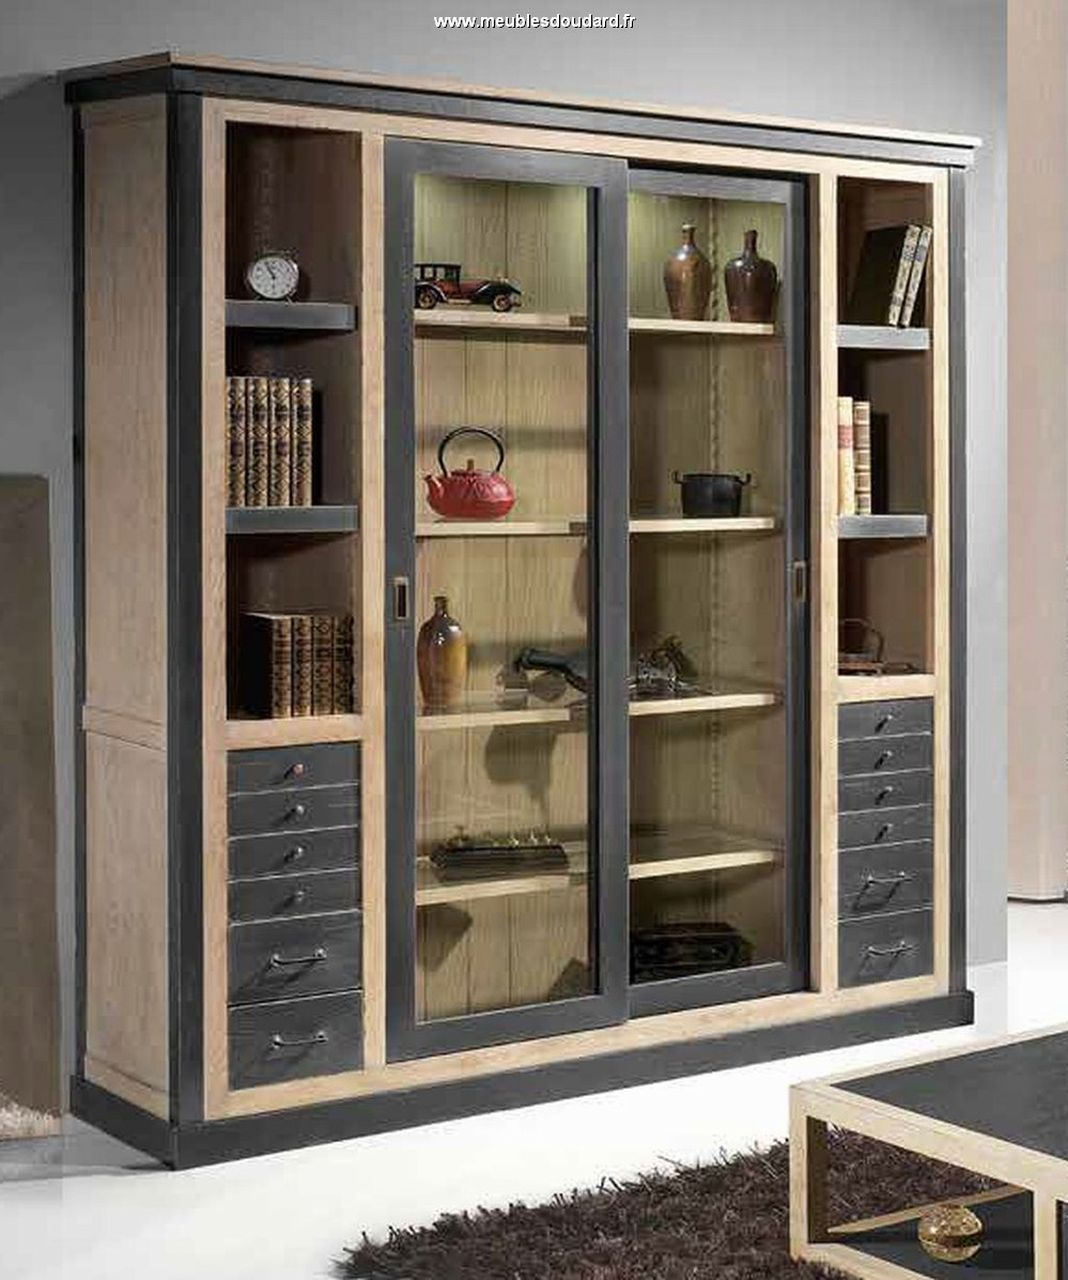 biblioth que moderne bois id e int ressante pour la conception de meubles en bois qui inspire. Black Bedroom Furniture Sets. Home Design Ideas